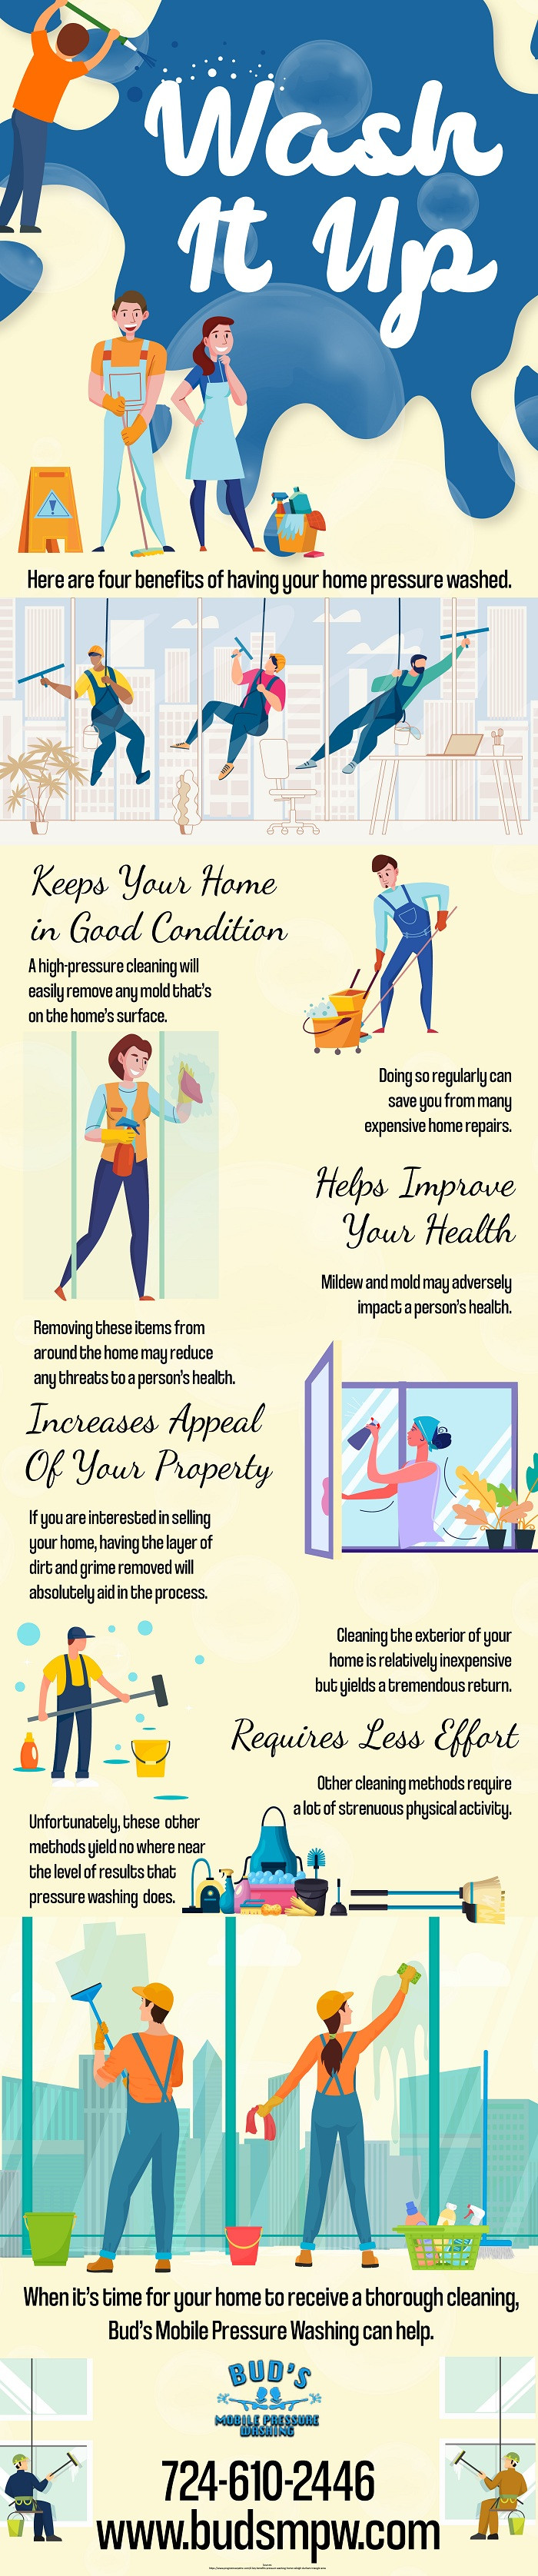 Wash It Up - Infographic - Here are four benefits of having your home pressure washed. A high-pressure cleaning will easily remove any mold that's on the home's surface.